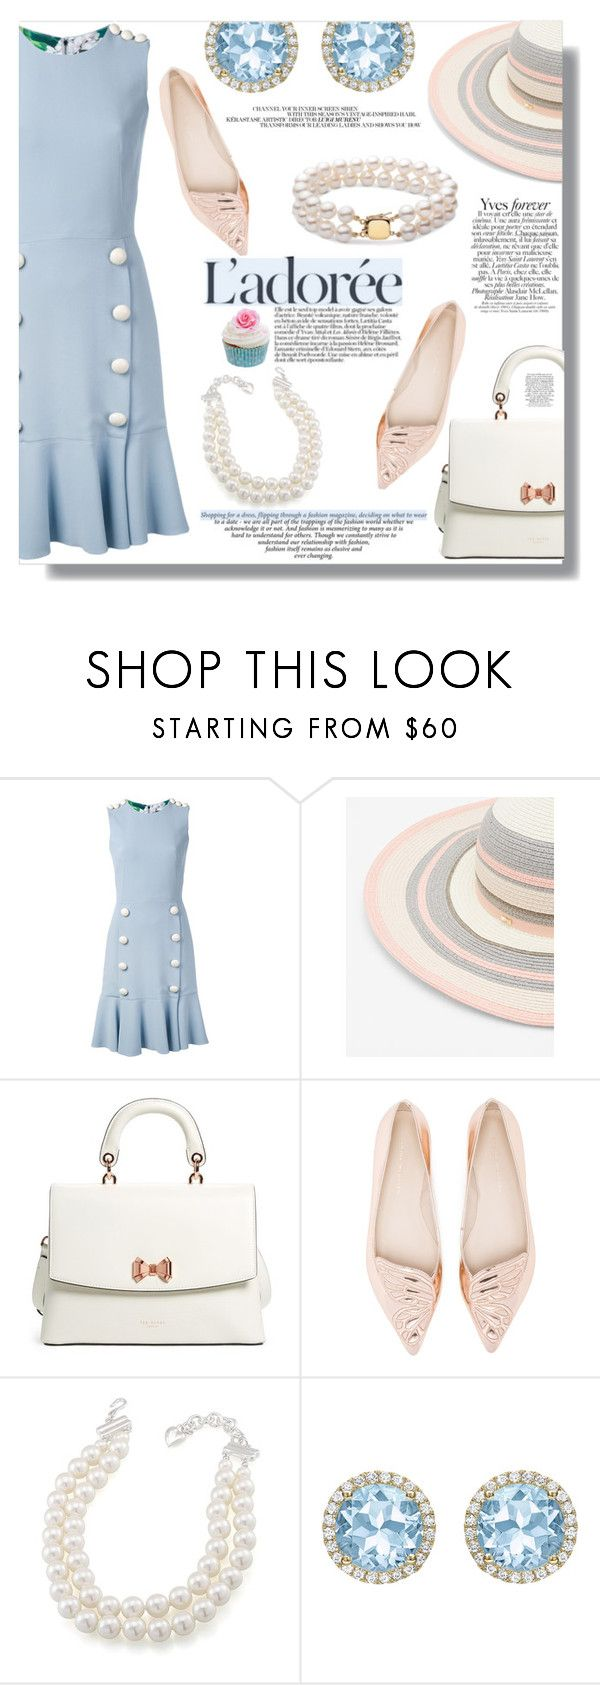 """be lady like"" by xwafflecakezx on Polyvore featuring Dolce&Gabbana, Ted Baker, Sophia Webster, Carolee, Kiki mcdonough and SANCHEZ"